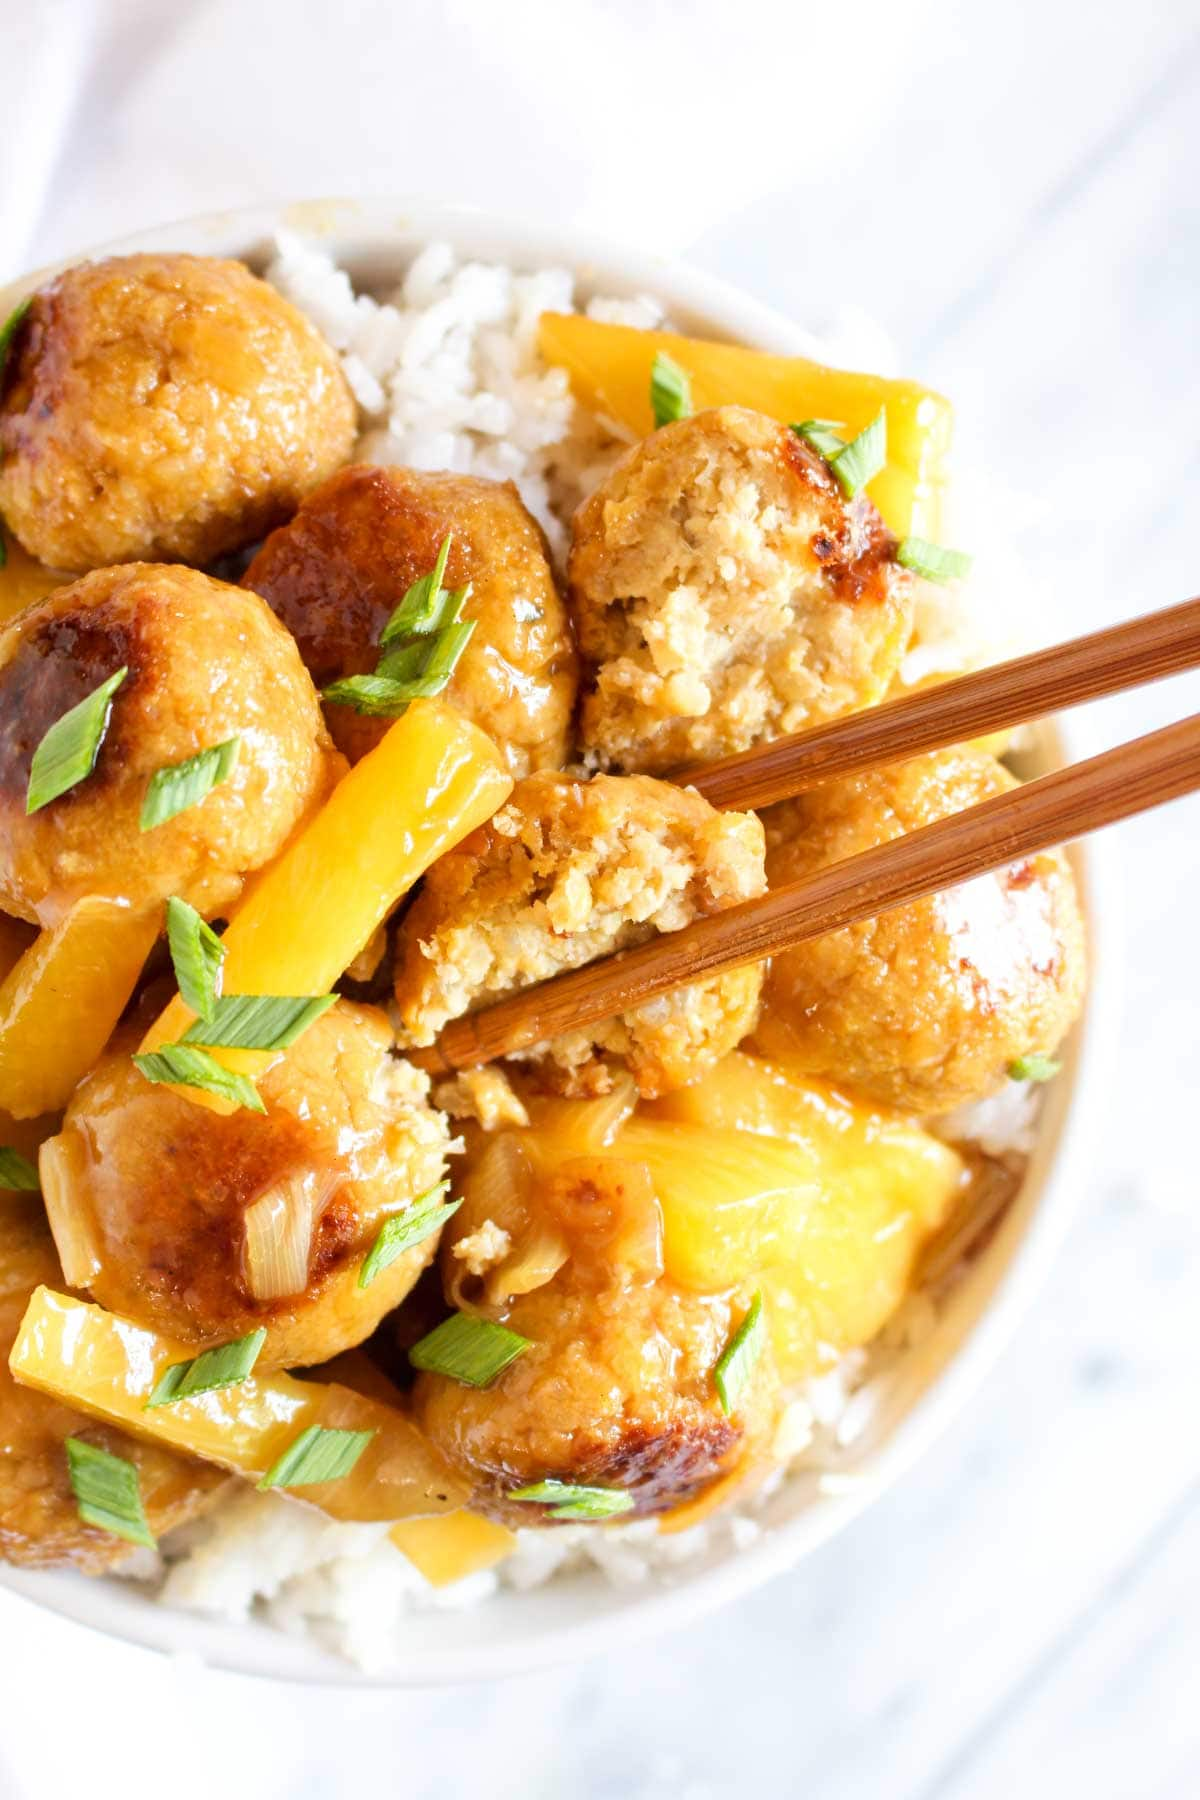 TheseSweet and Sour Tempeh Meatballs are served on a bed offragrant coconut rice and coated in a deliciously sticky sauce. This healthy vegan and gluten free dish is jam packed with flavor. | CatchingSeeds.com